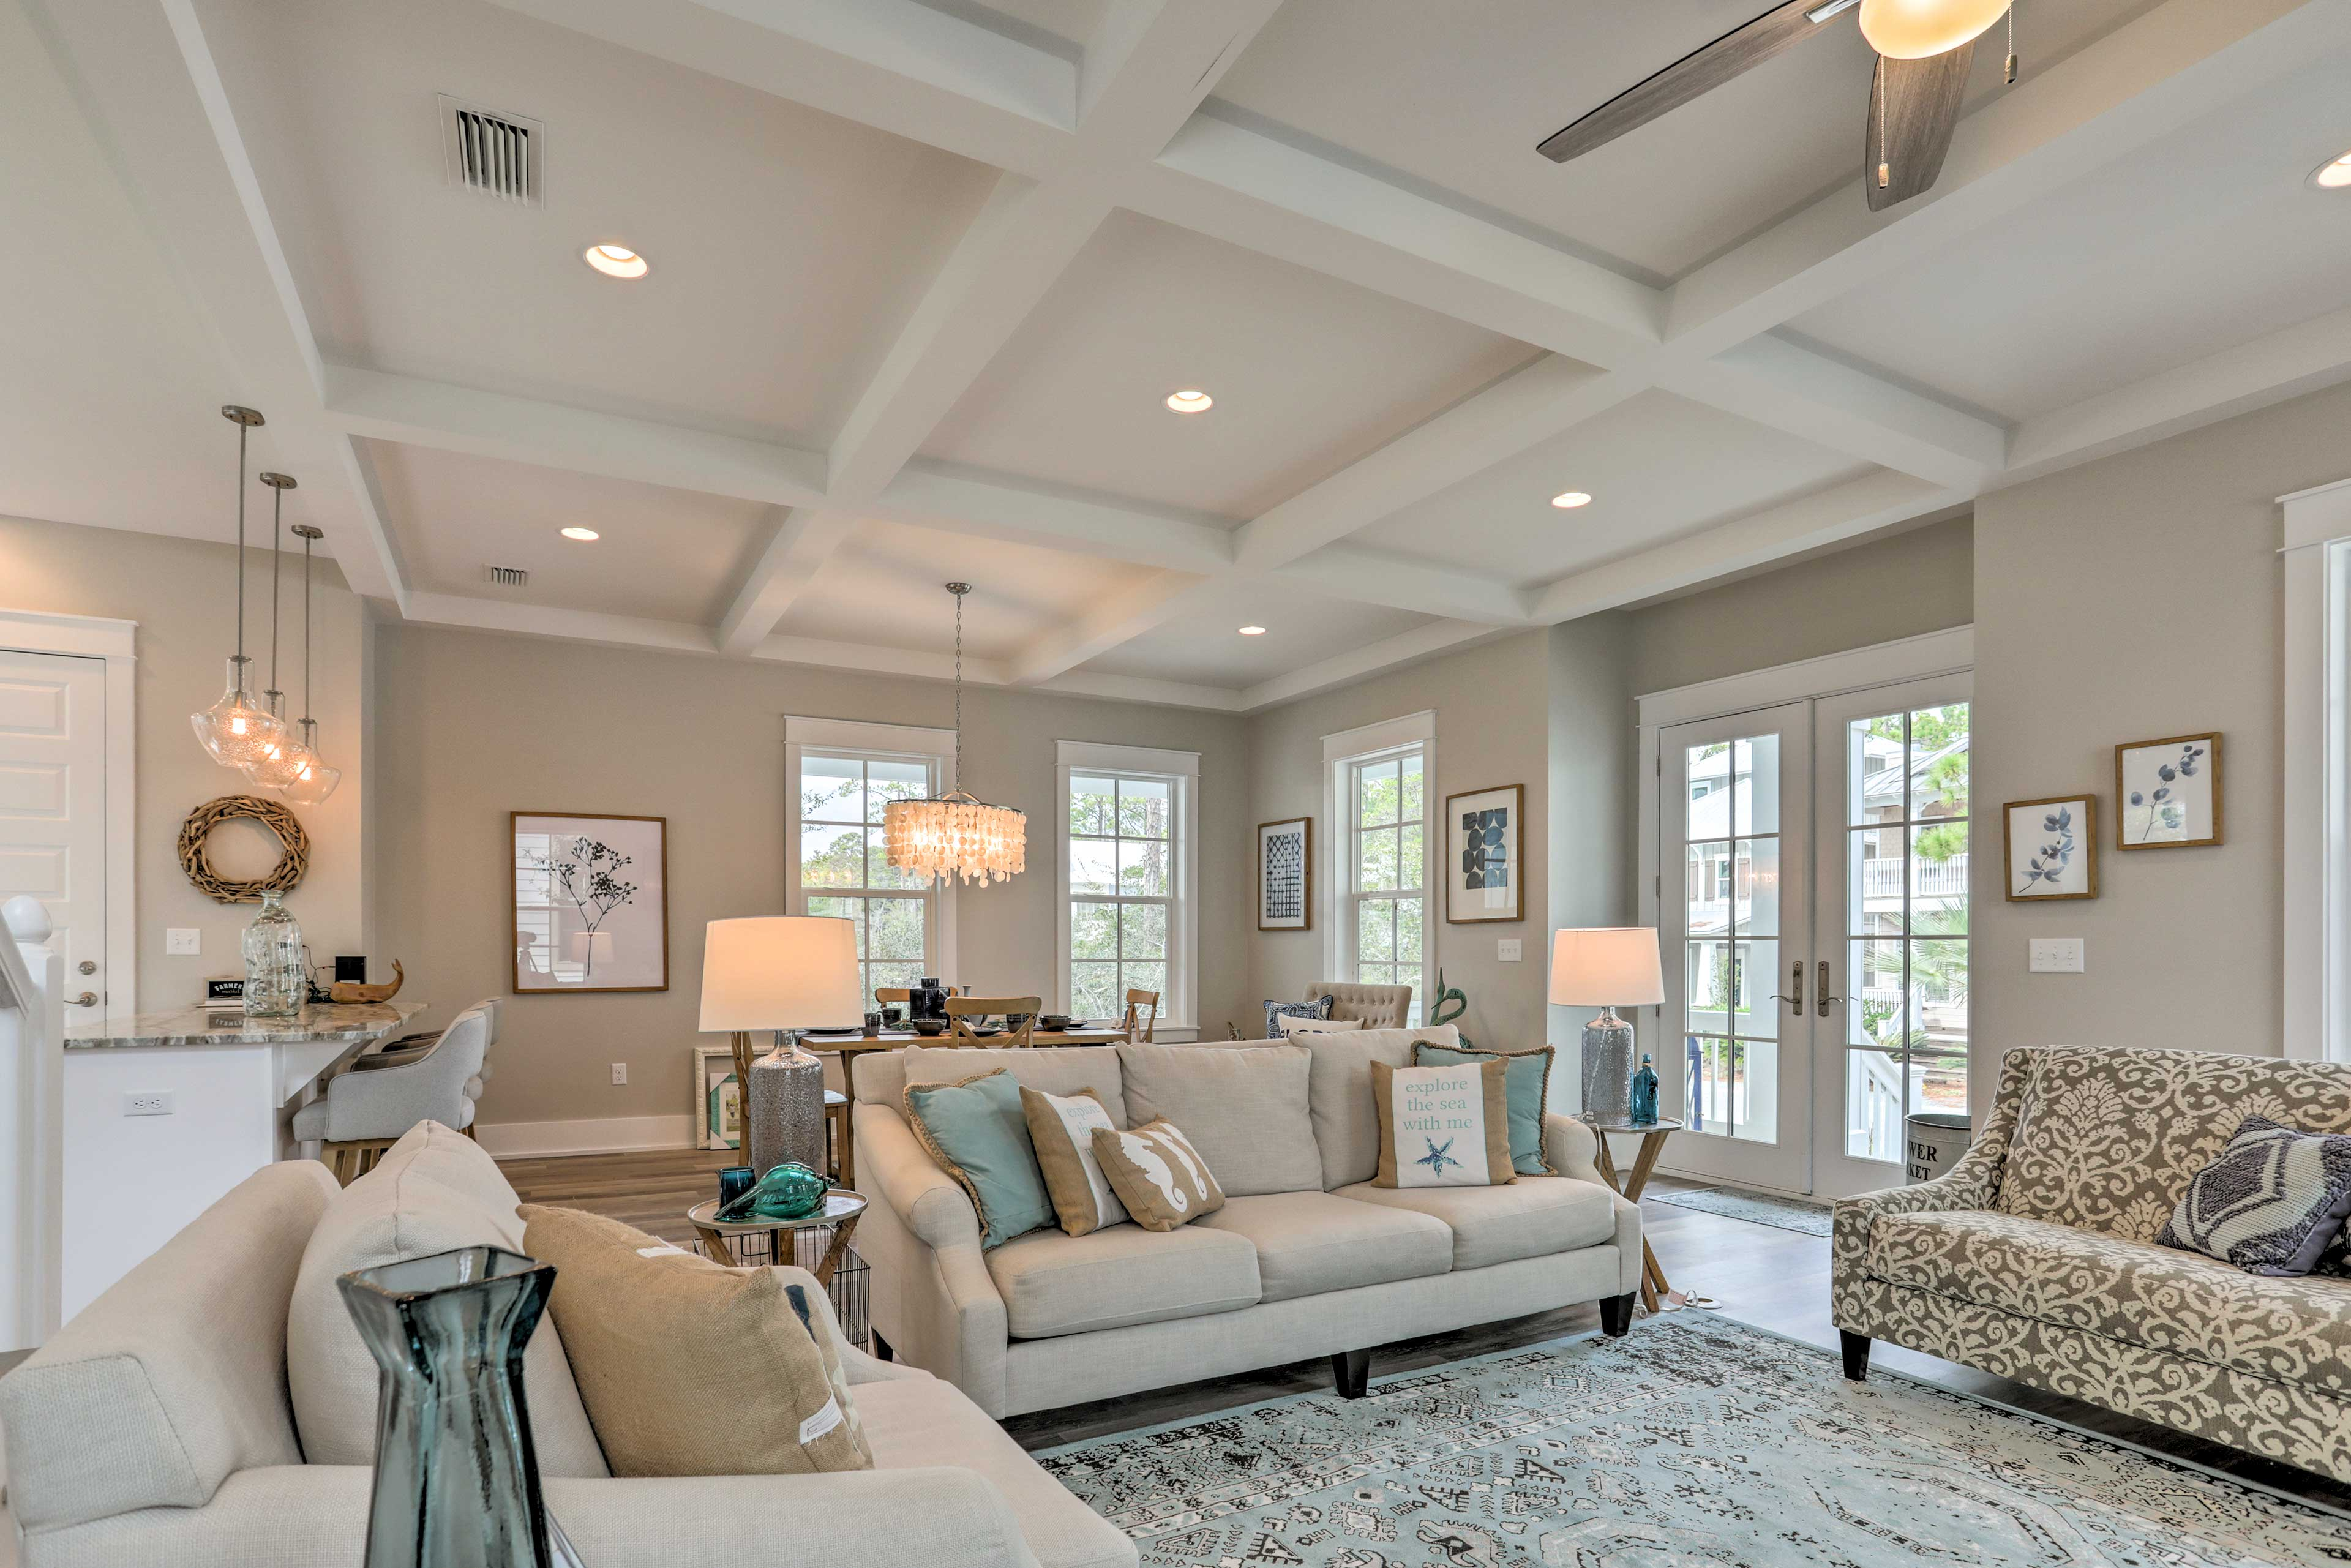 Nautical decor accentuates this bright and airy home.